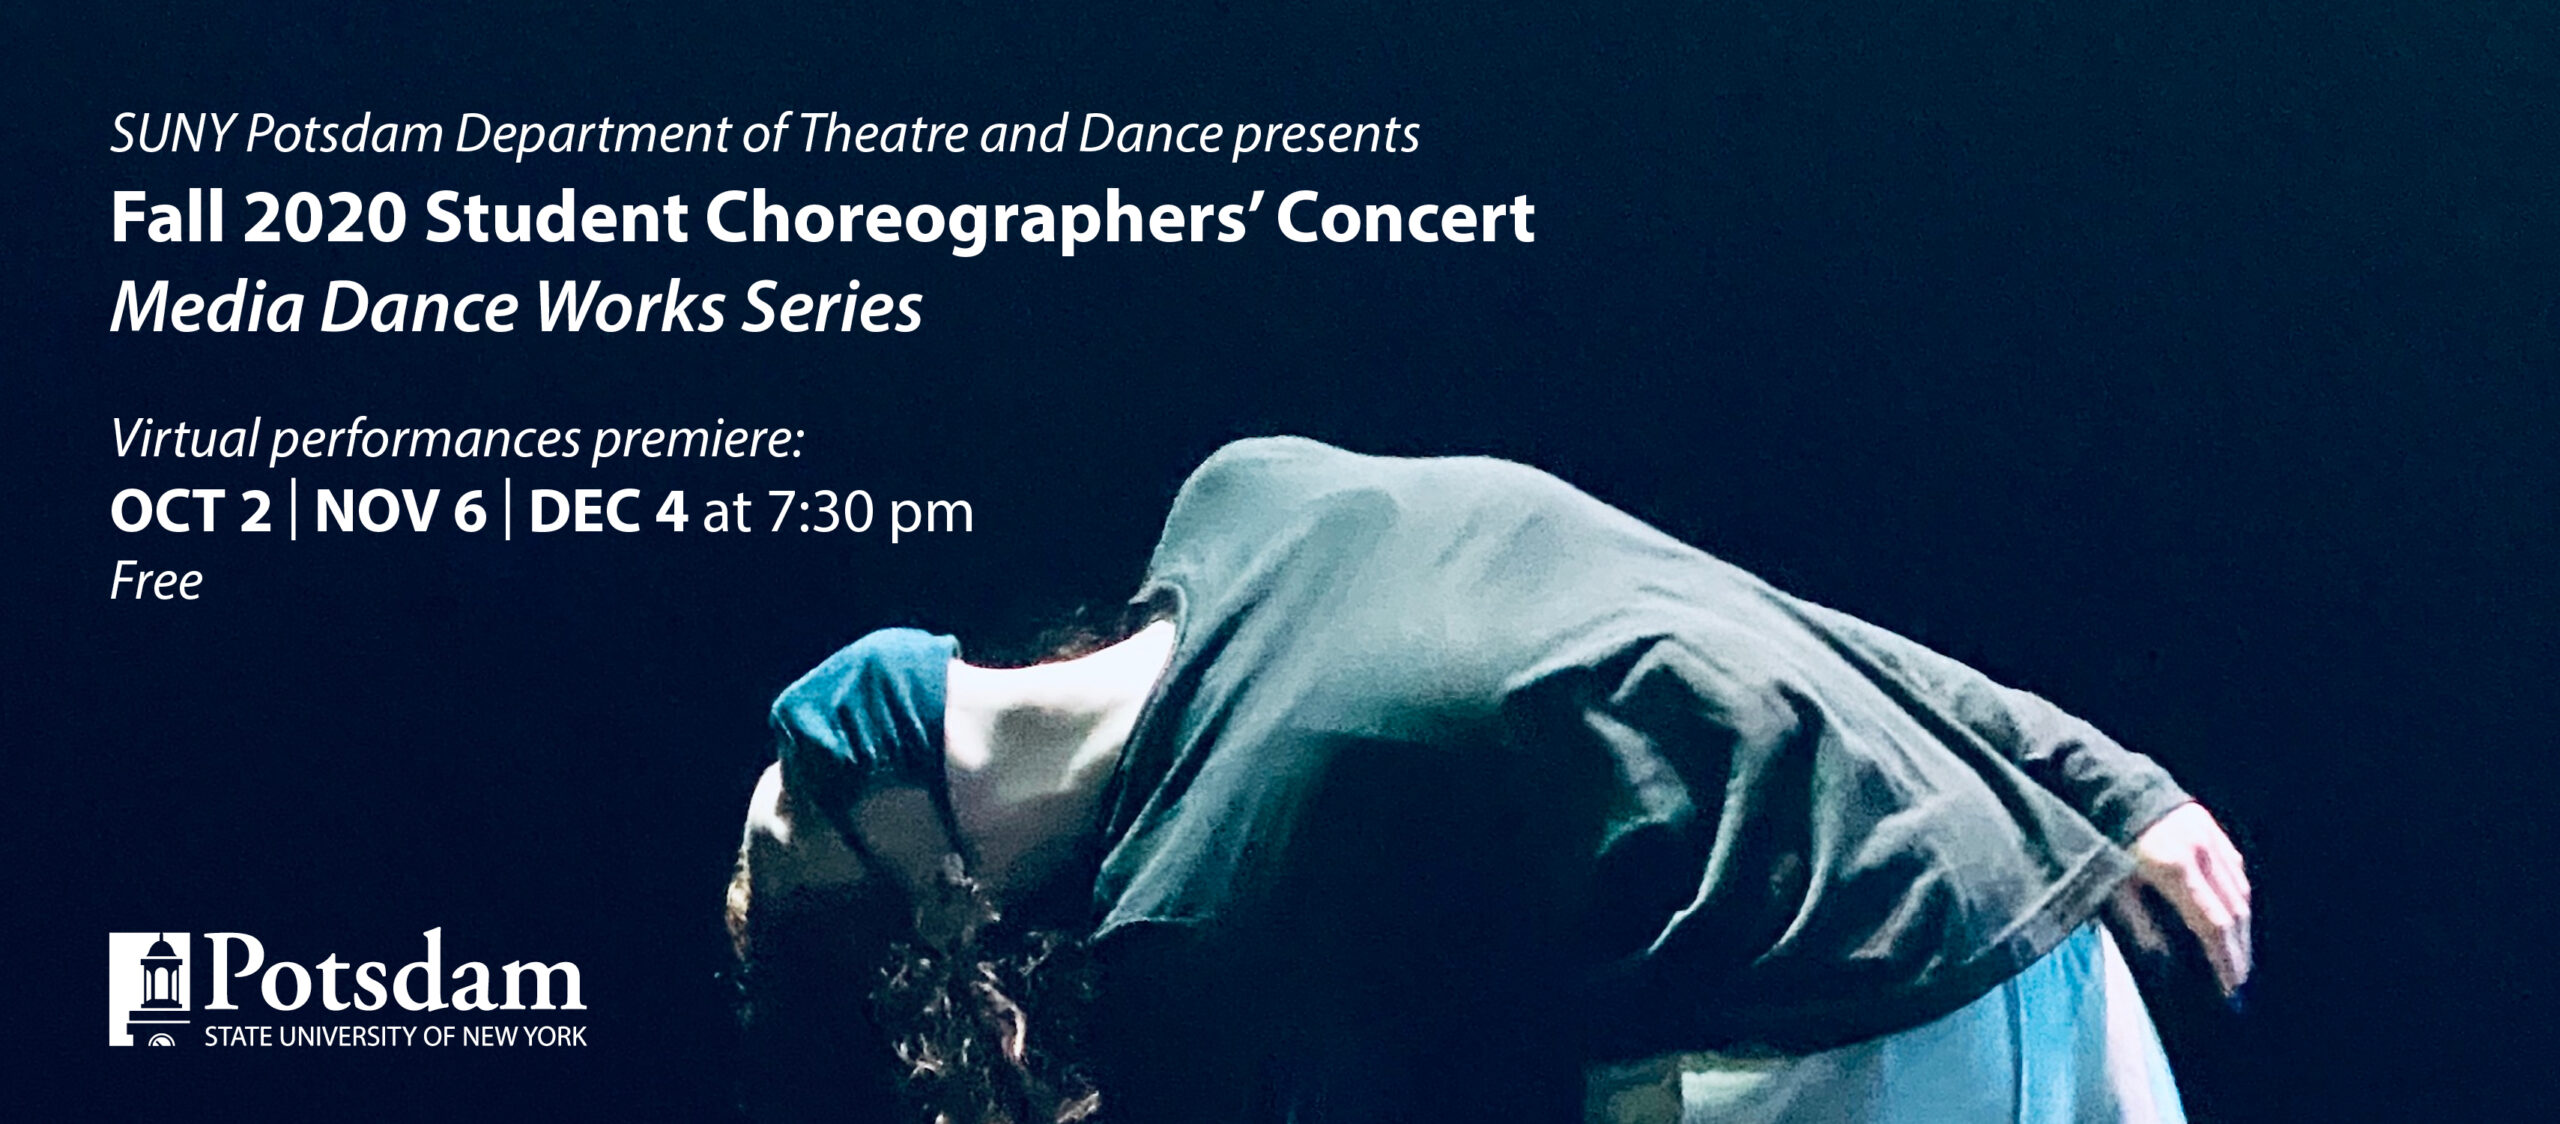 SUNY Potsdam Department of Theatre and Dance presents the Fall 2020 Student Choreographers' Concert Media Dance Works Series. Virtual performances premiere on October 2, November 6 and December 4 at 7:30 pm. Free. Potsdam State University of New York.